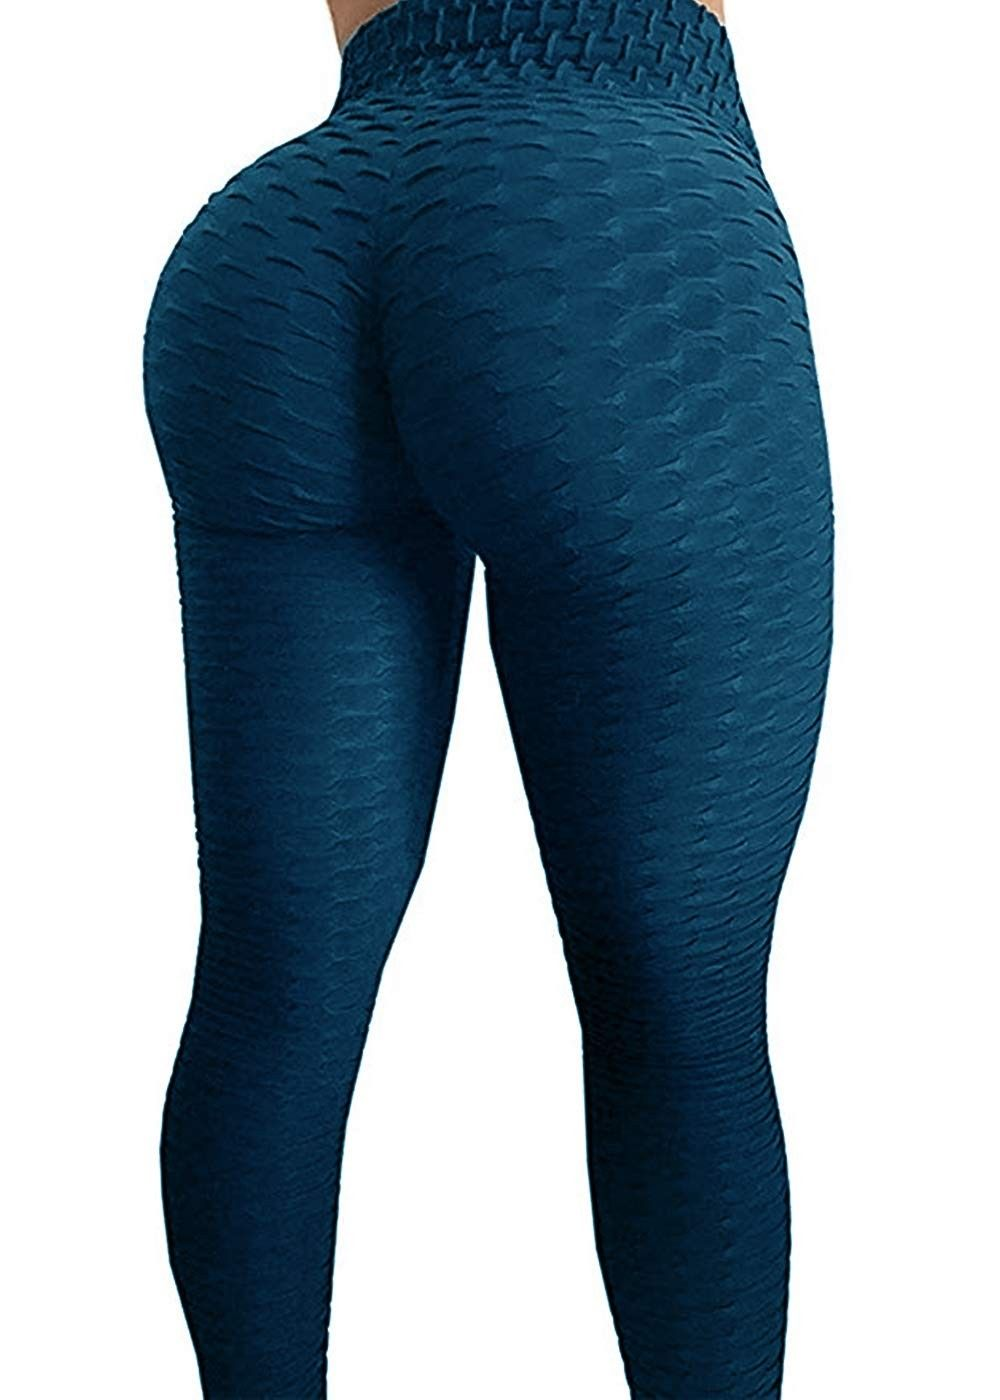 Textured Stretchy Athletic Leggings - Navy - CL18QQDTTUY - Sports & Fitness Clothing, Women, Tights...